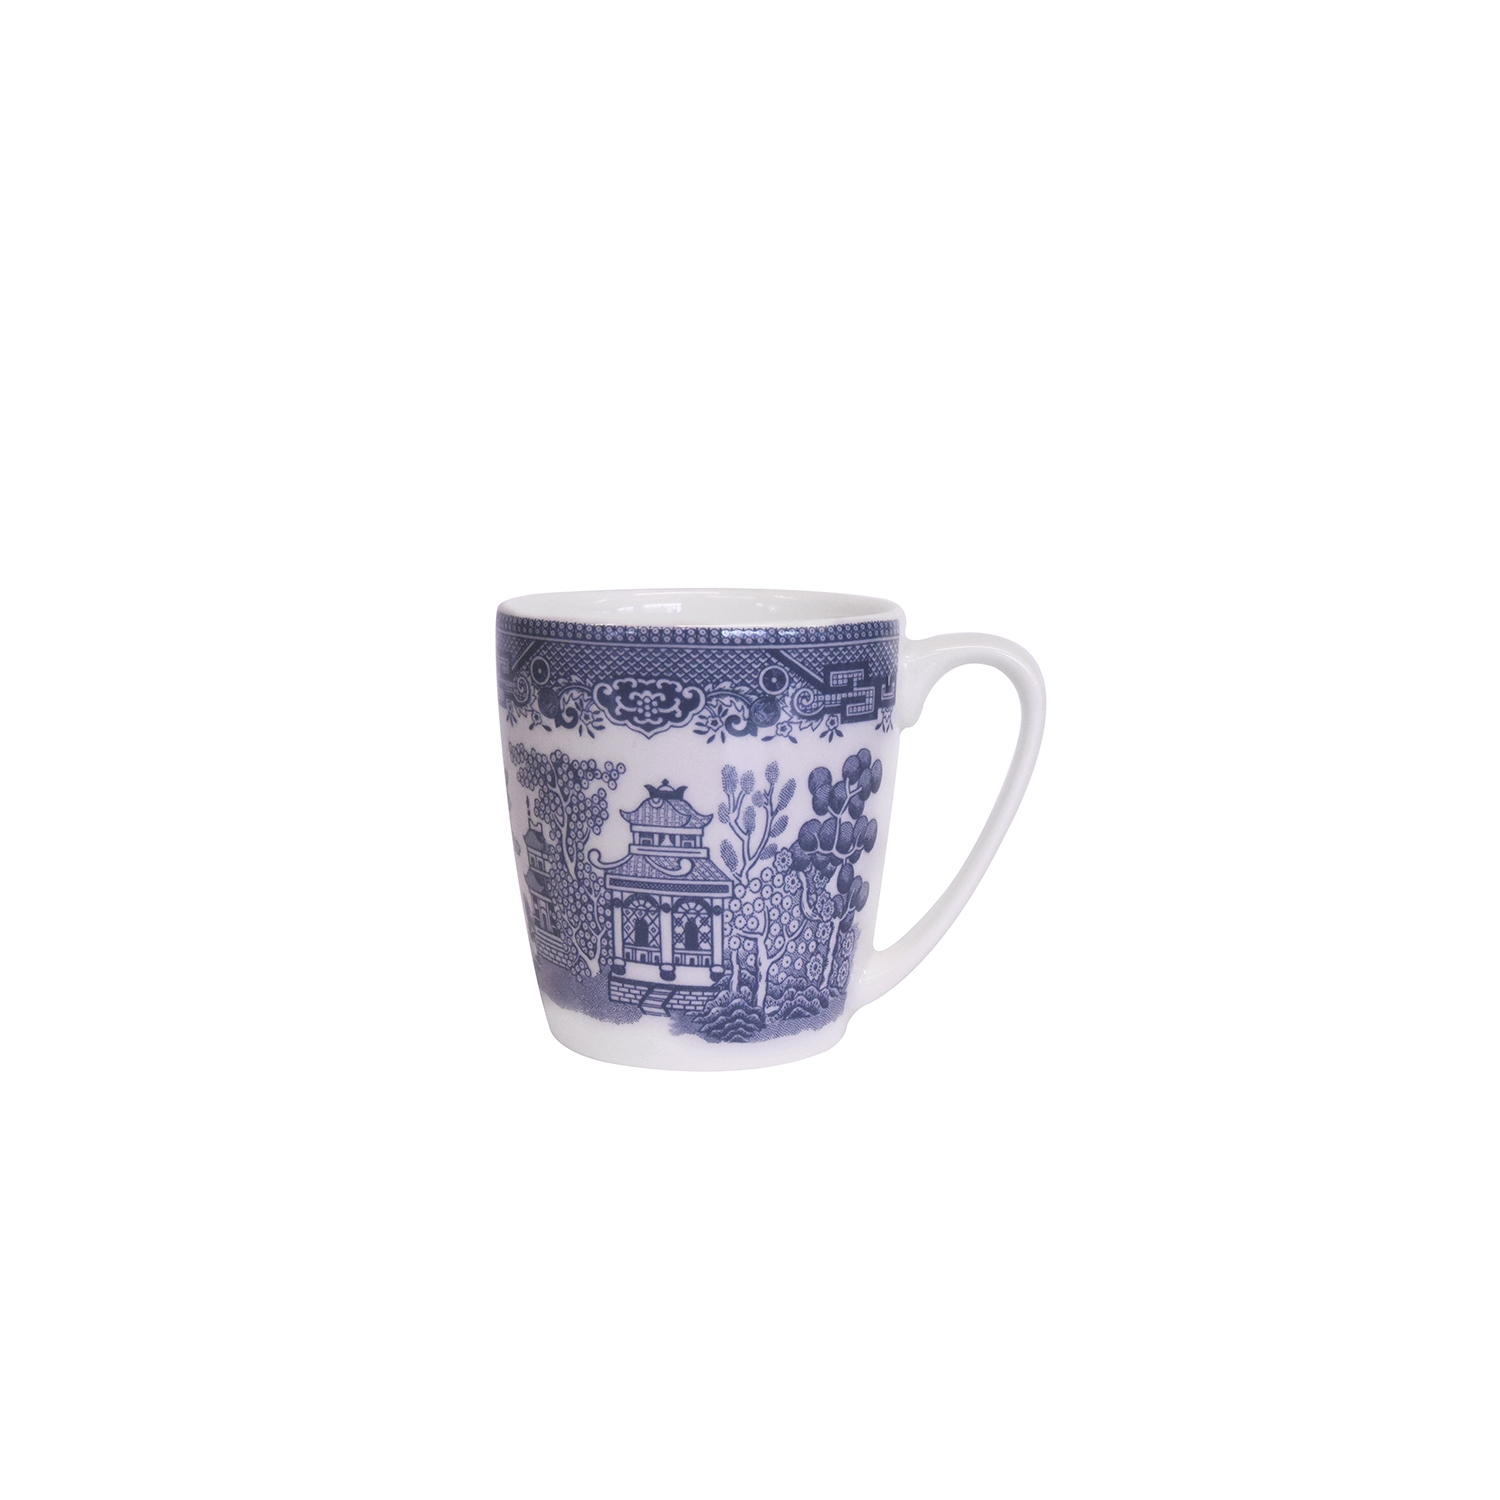 Image of Churchill China, Blue Willow Mug, 220ml